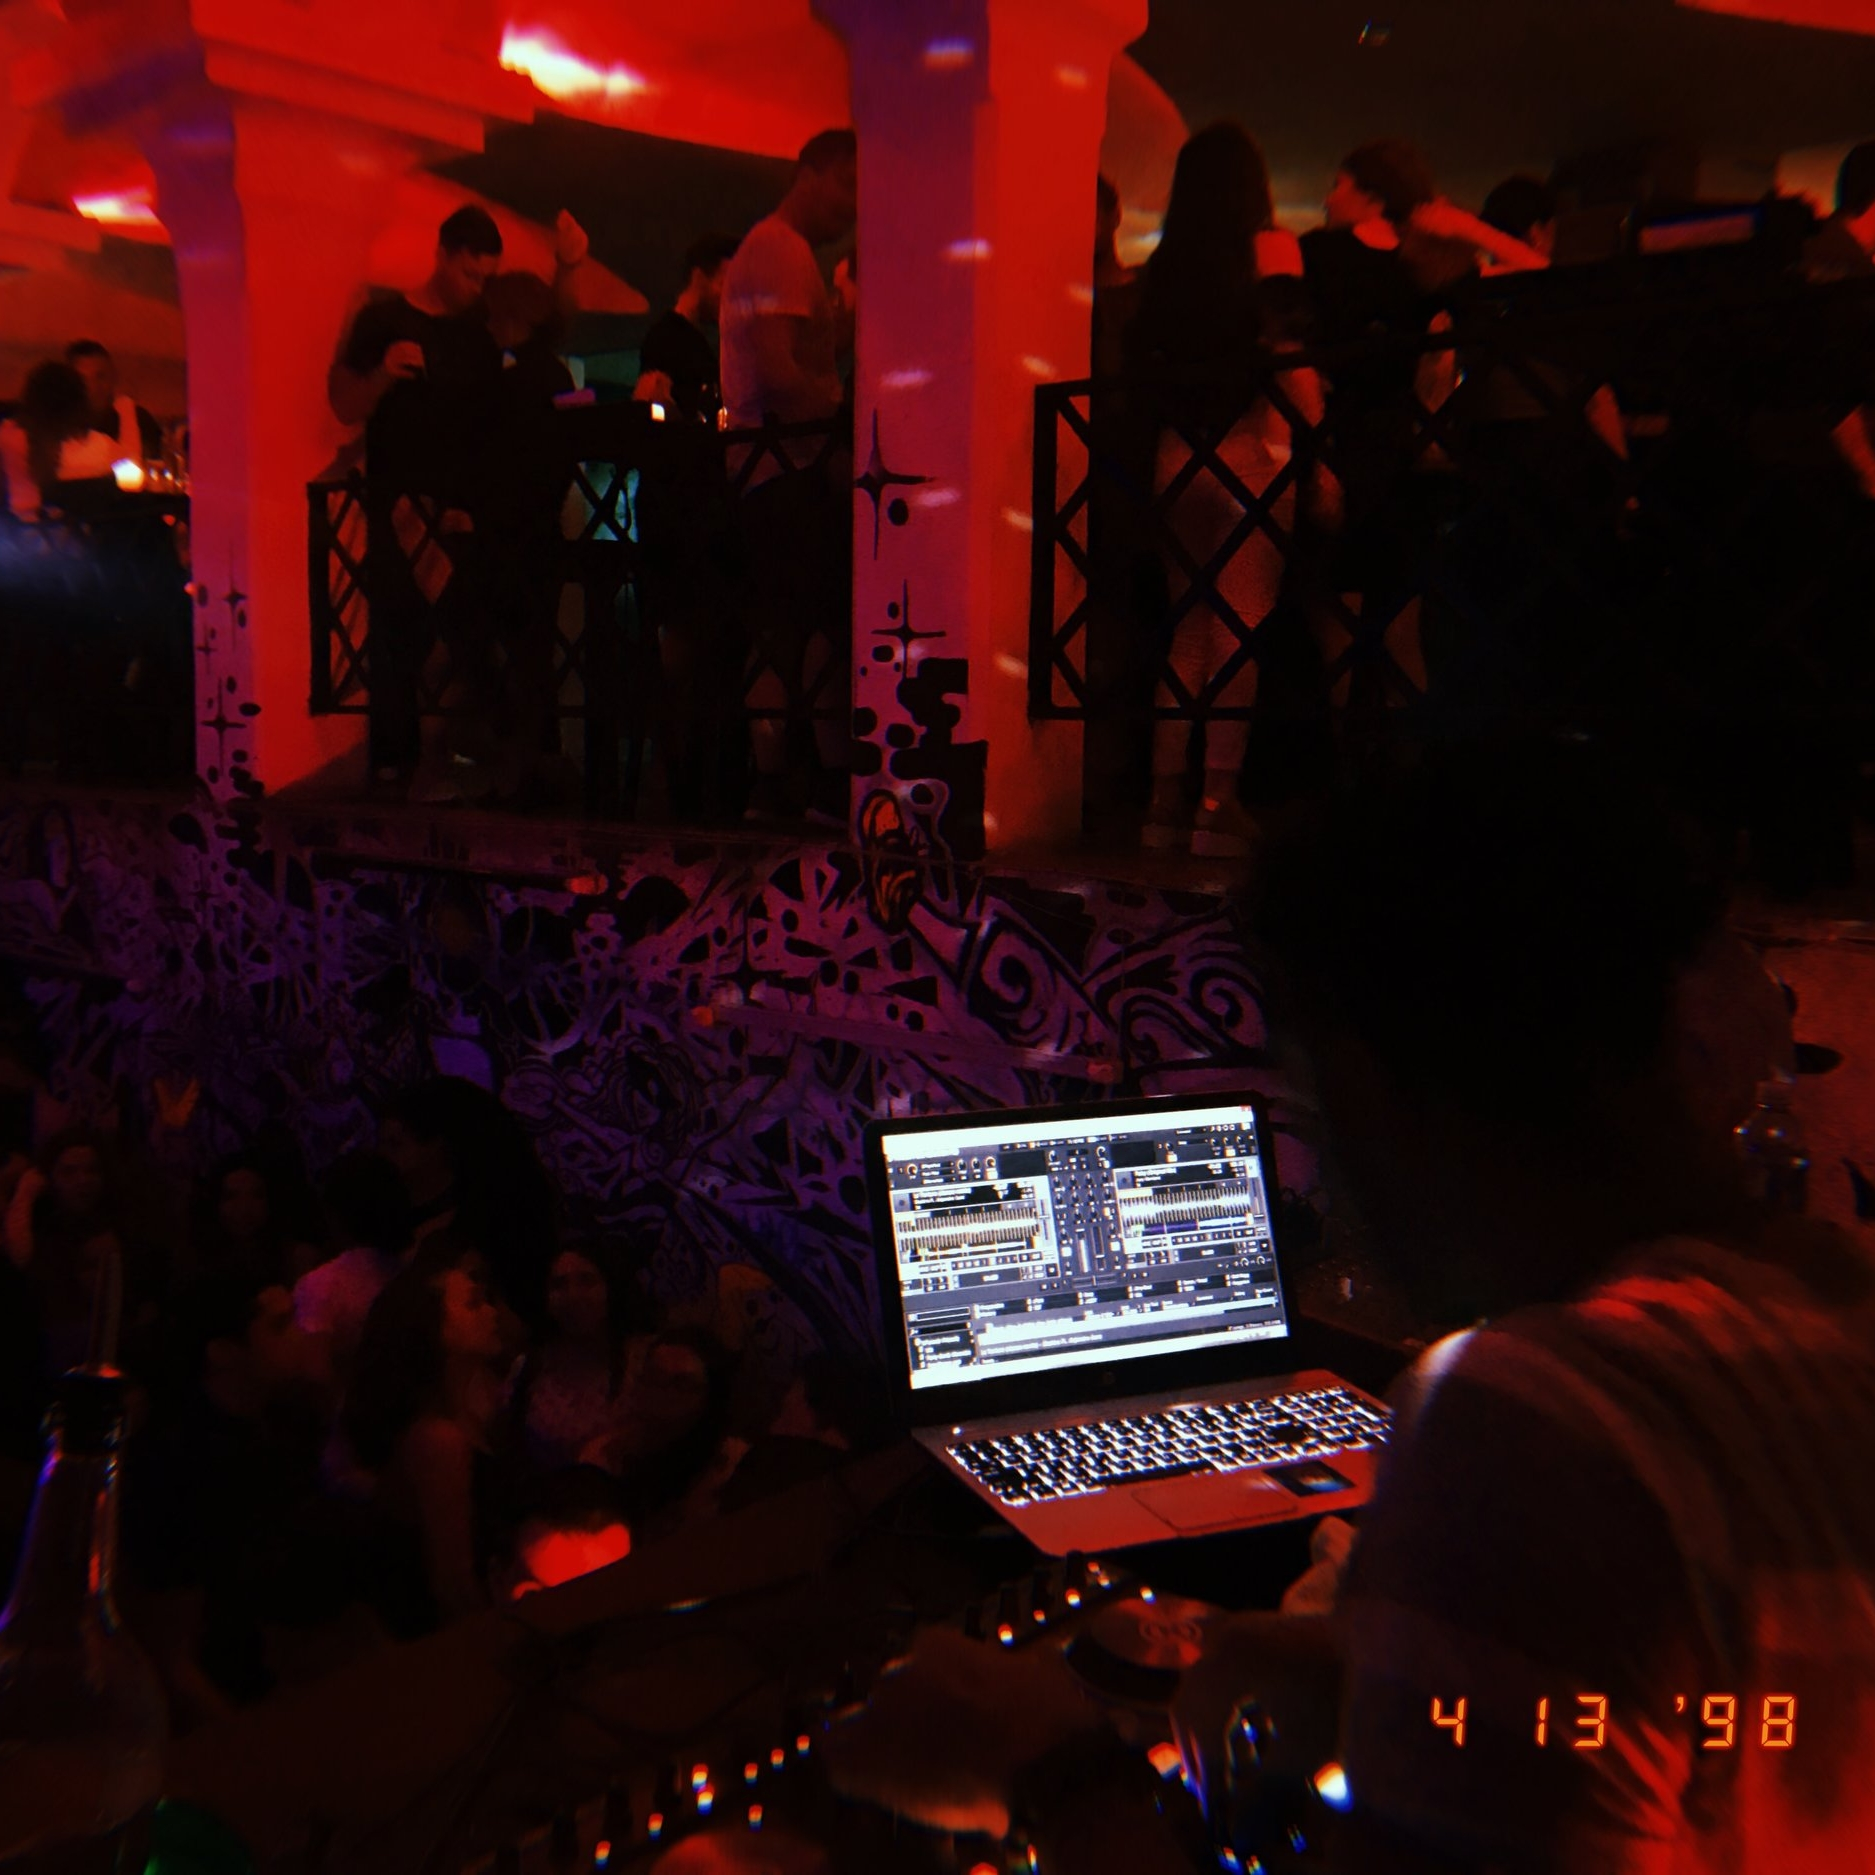 A view from the DJ booth in Vibras.